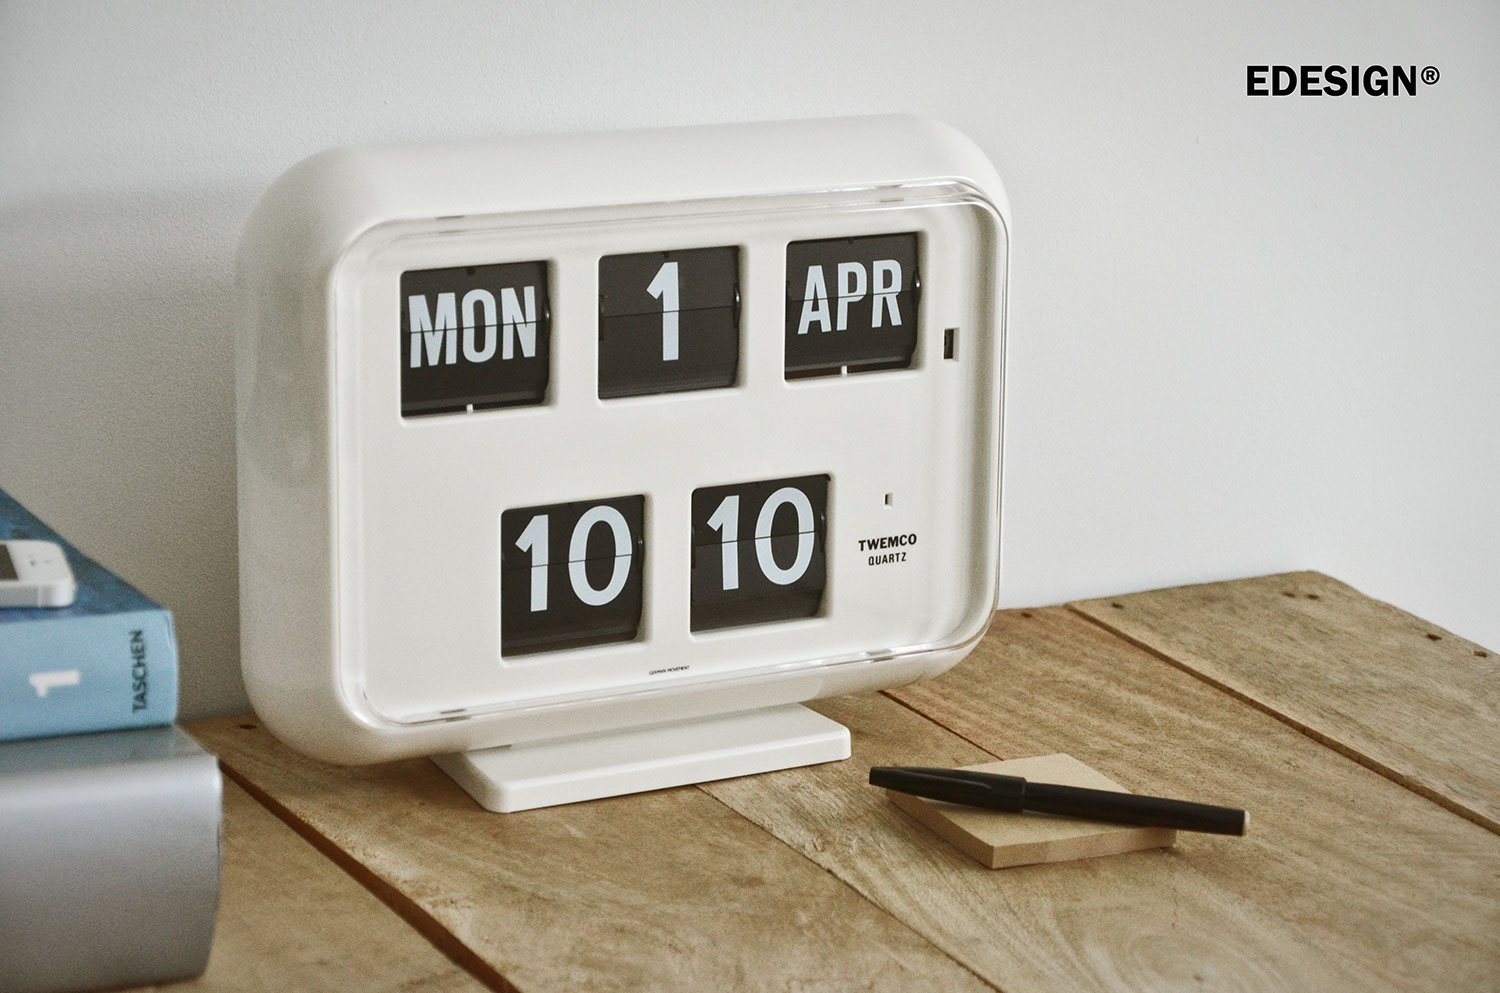 Twemco qd35 large perpetual calendar flipclock in white english twemco qd35 large perpetual calendar flipclock in white english date 24 hrs time original interior design icon since 1956 on wall or standing amipublicfo Choice Image